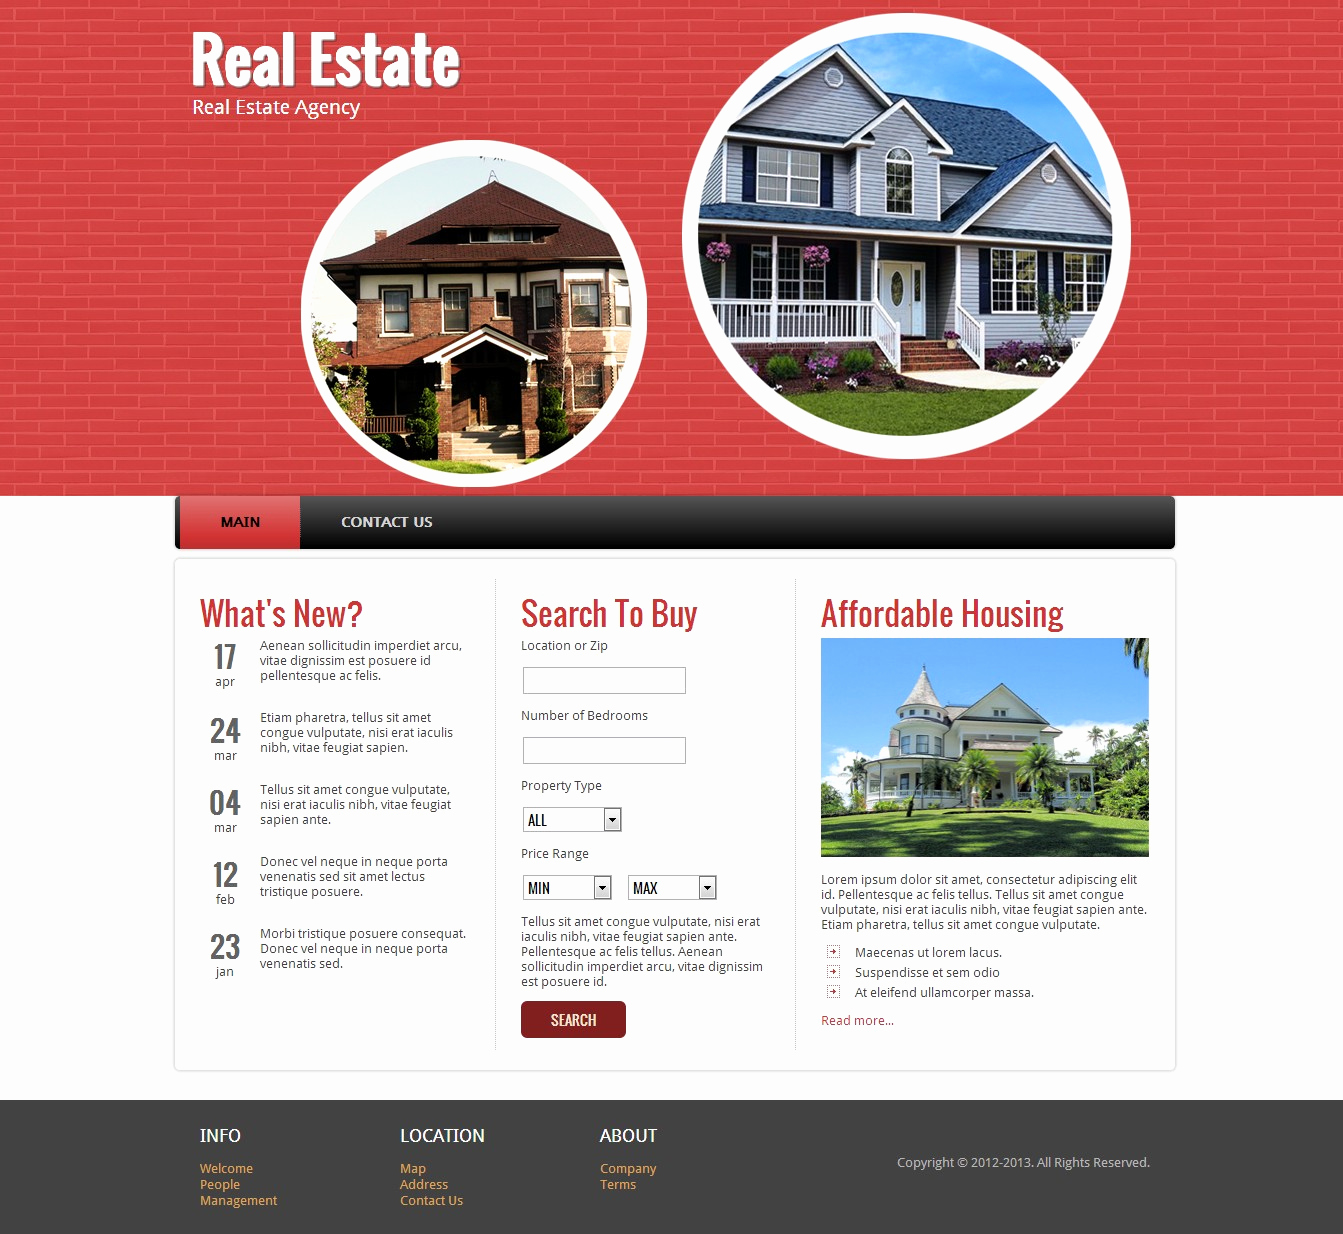 Real Estate Website Templates Inspirational Shop Inauguration Invitation Card